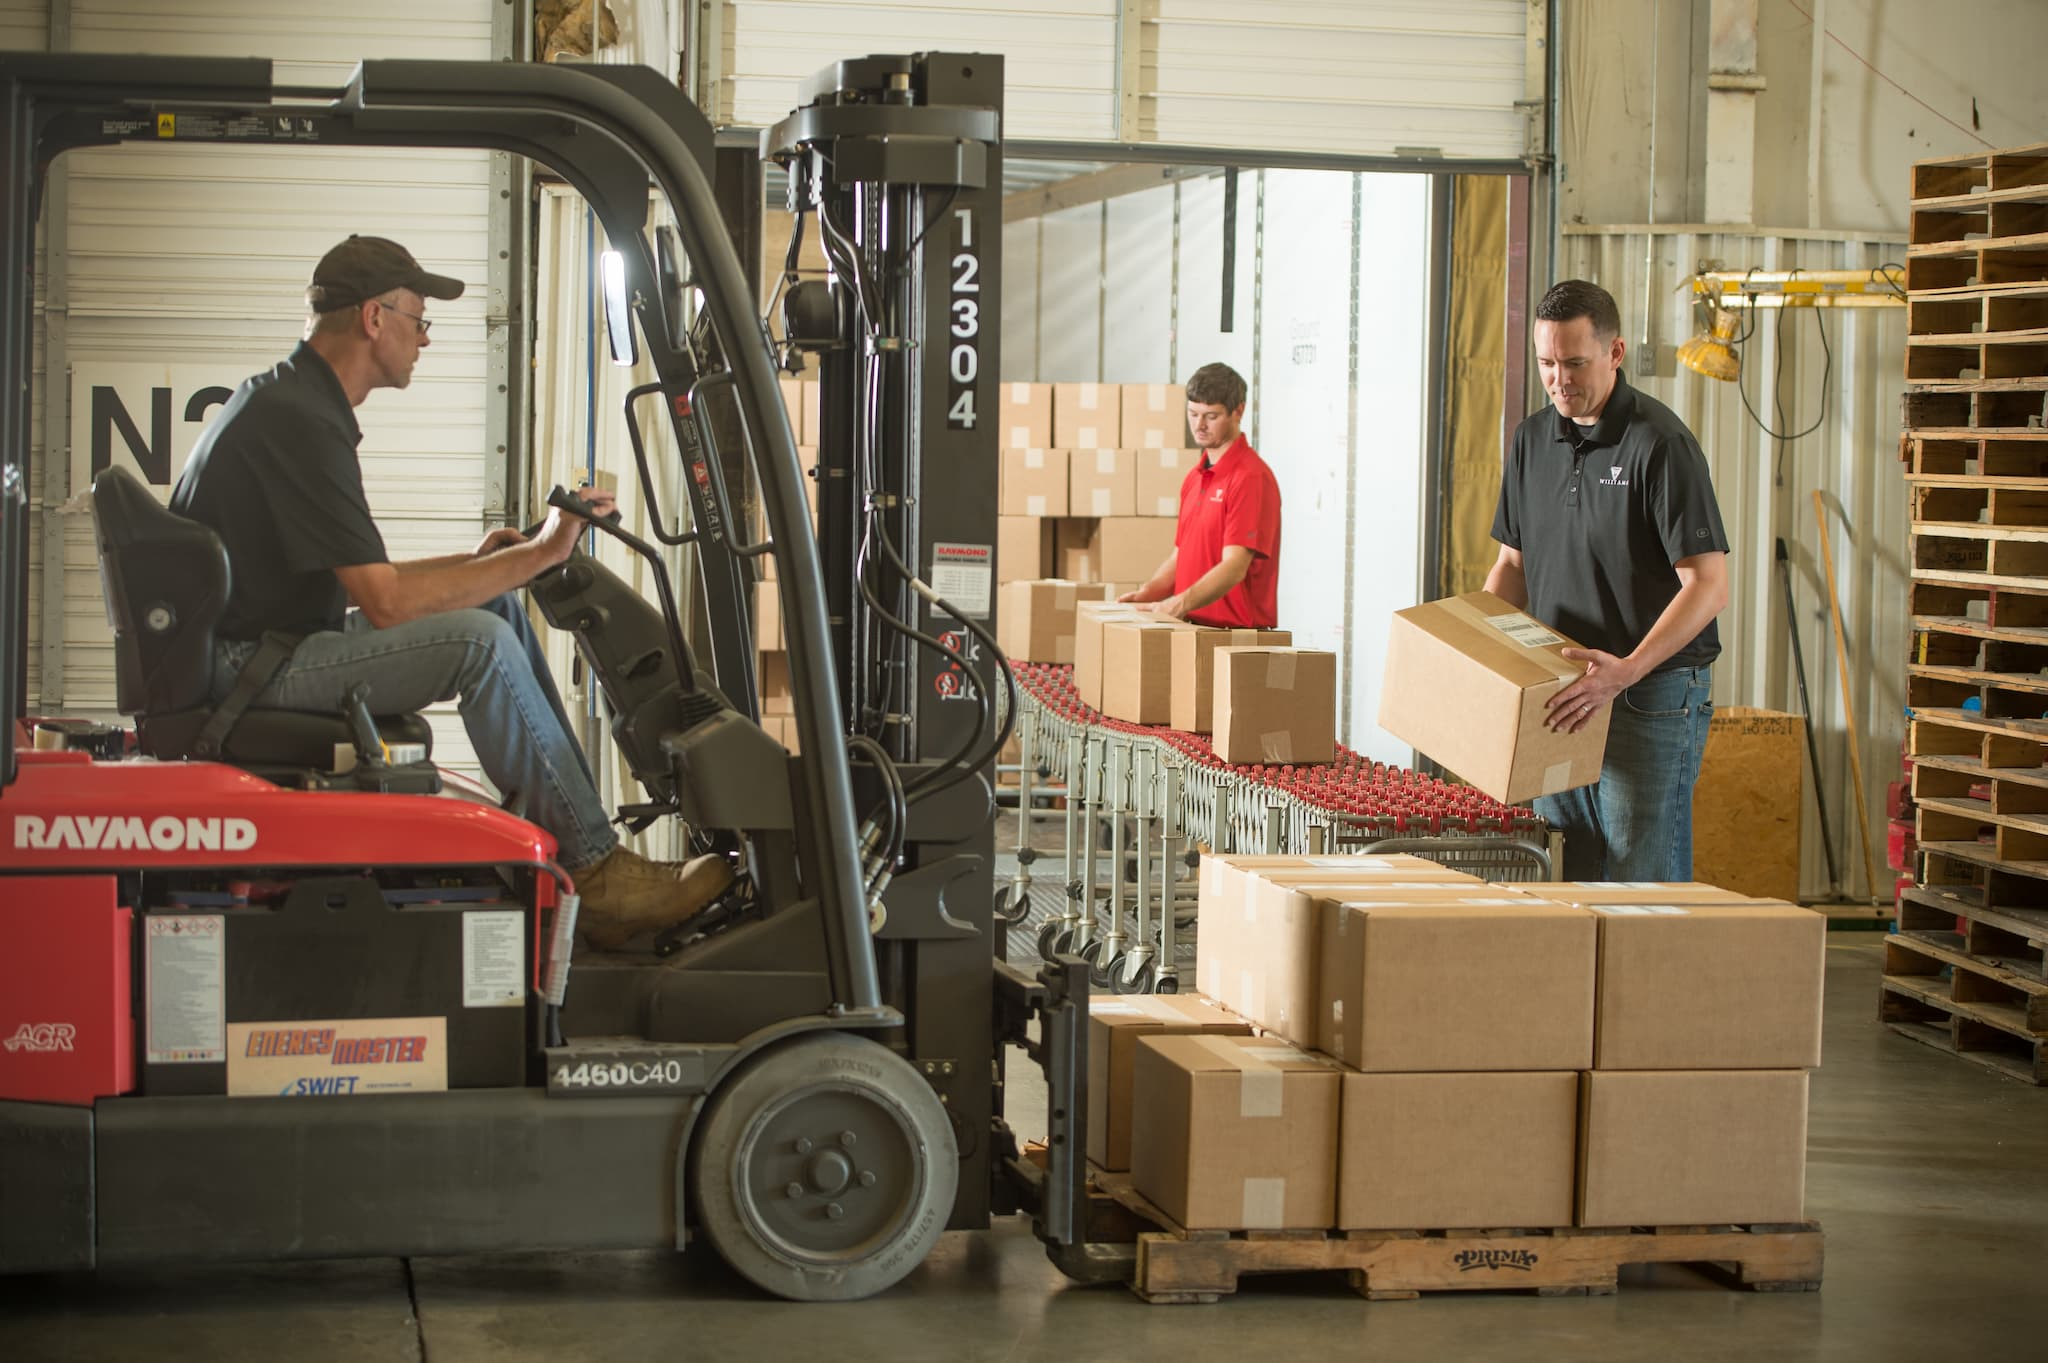 5 Ways to Calculate the True Cost of Order Fulfillment